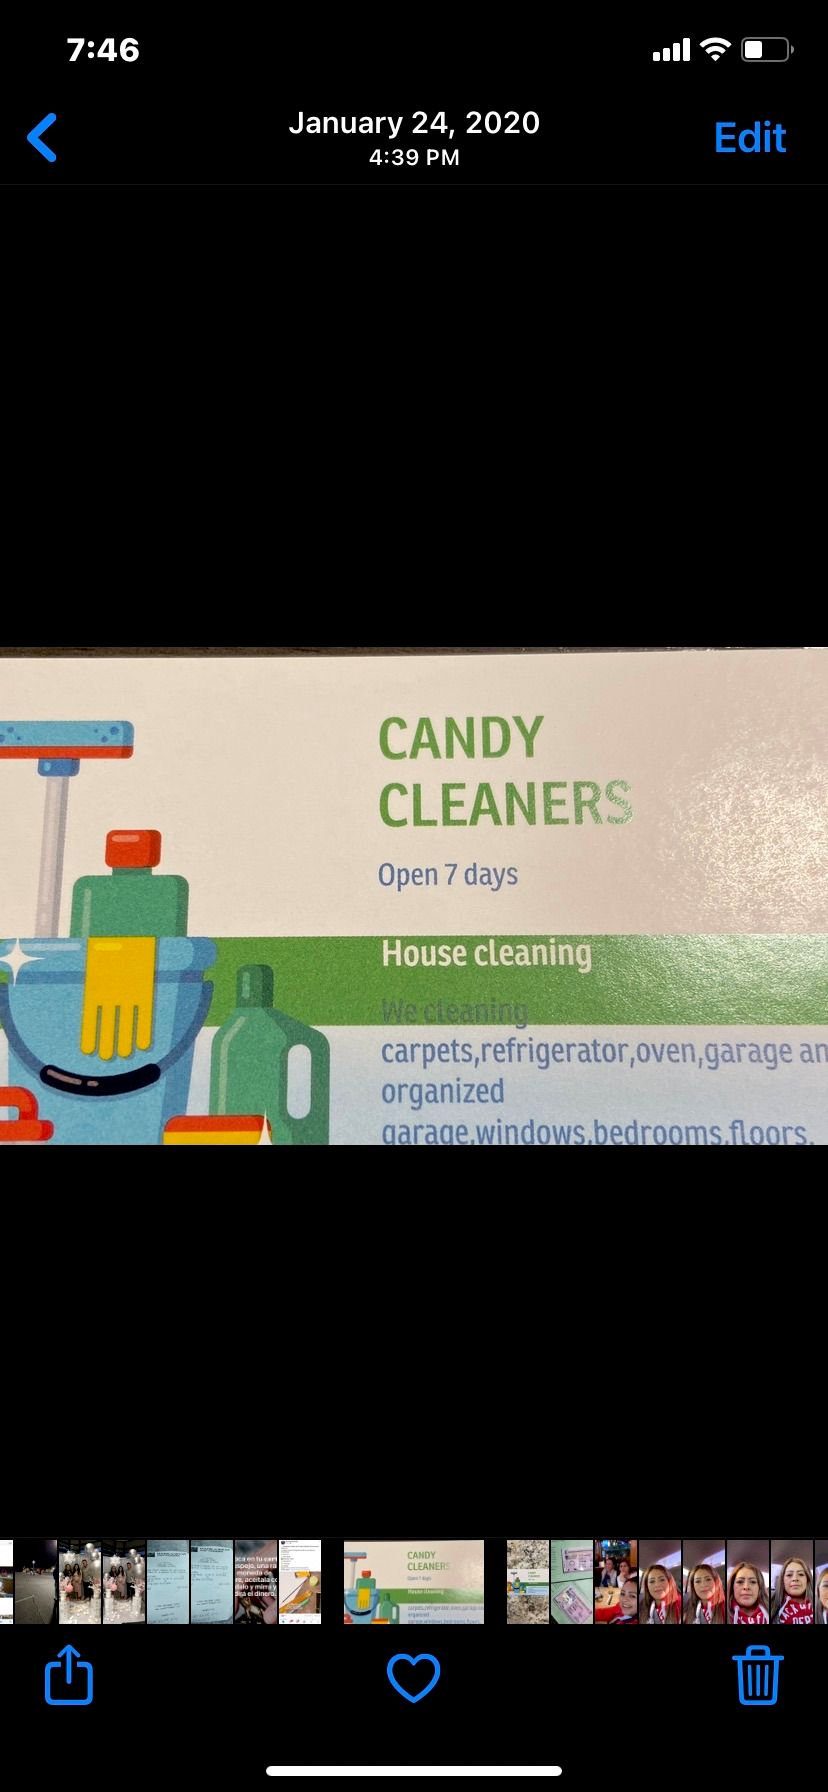 Candy Cleaners